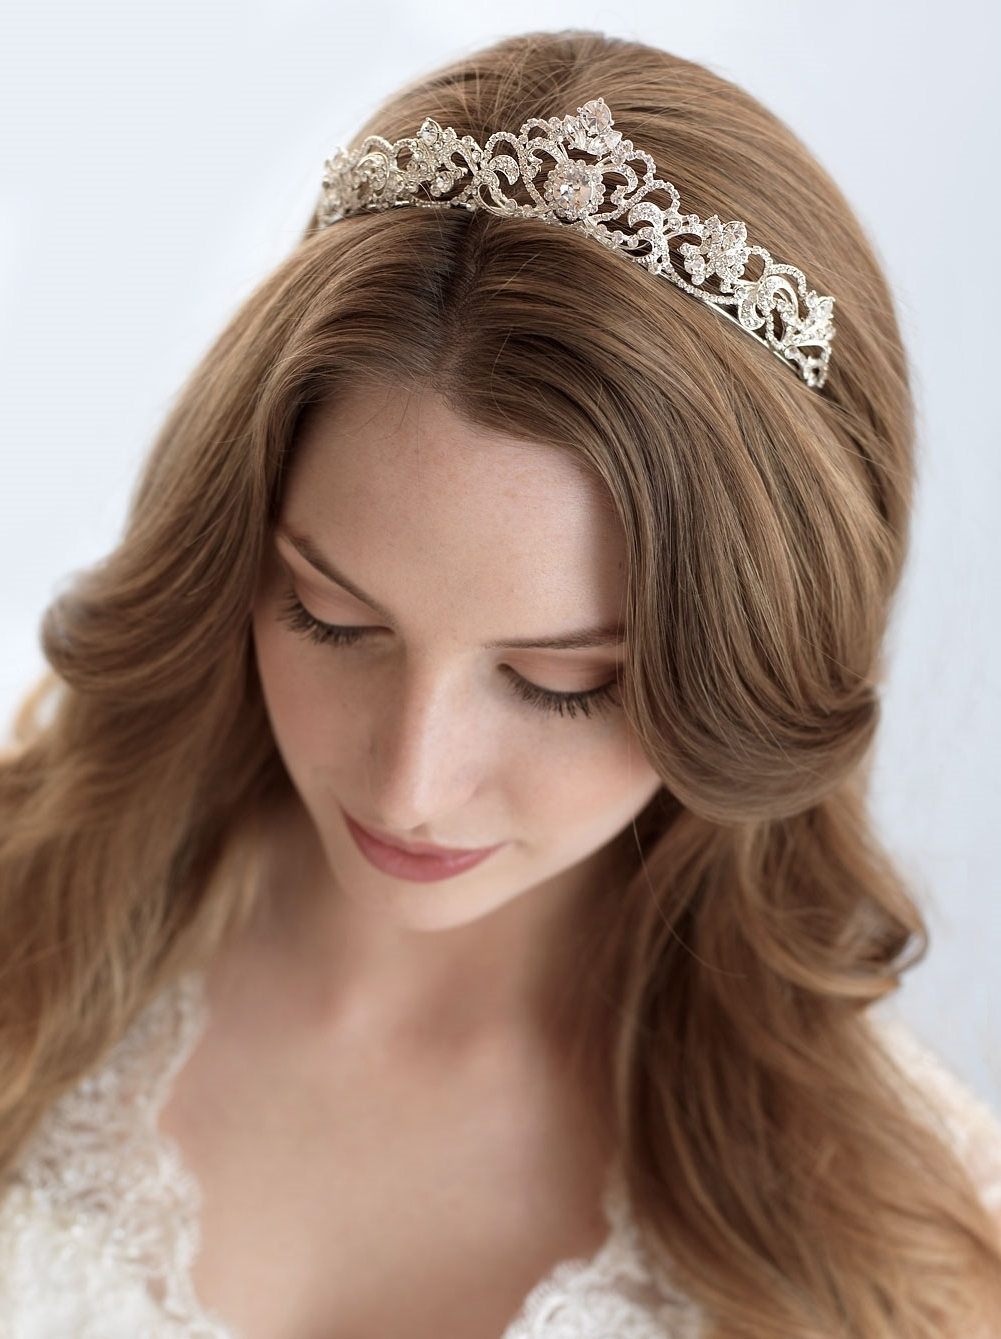 Bridal Tiara Hair Down – Tips In Choosing Bridal Tiaras Based N Face With Regard To Recent Wedding Hairstyles Down With Tiara (View 9 of 15)